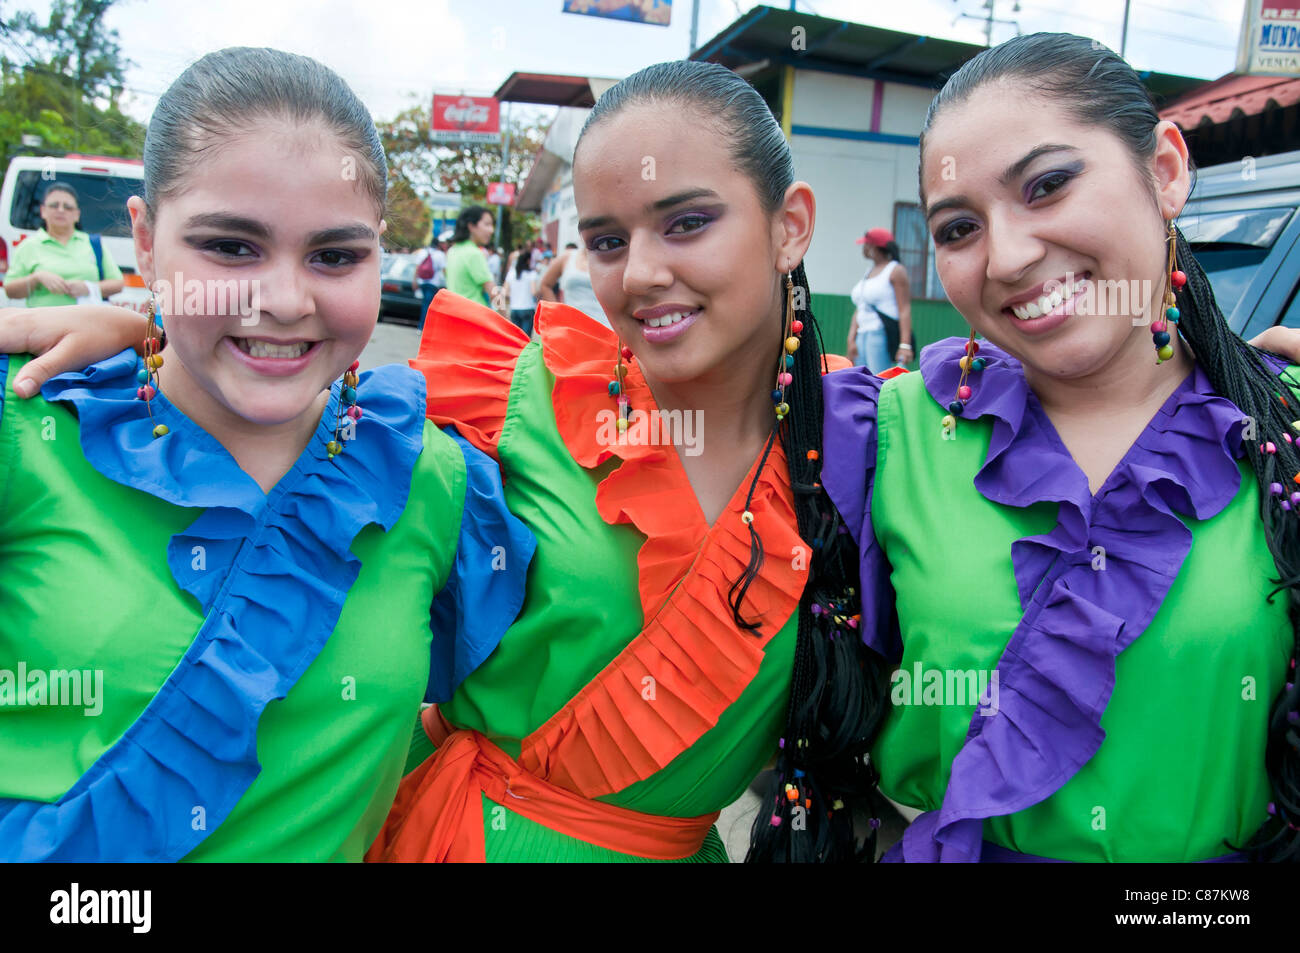 Costa Rican girls independence day Costa Rica - Stock Image